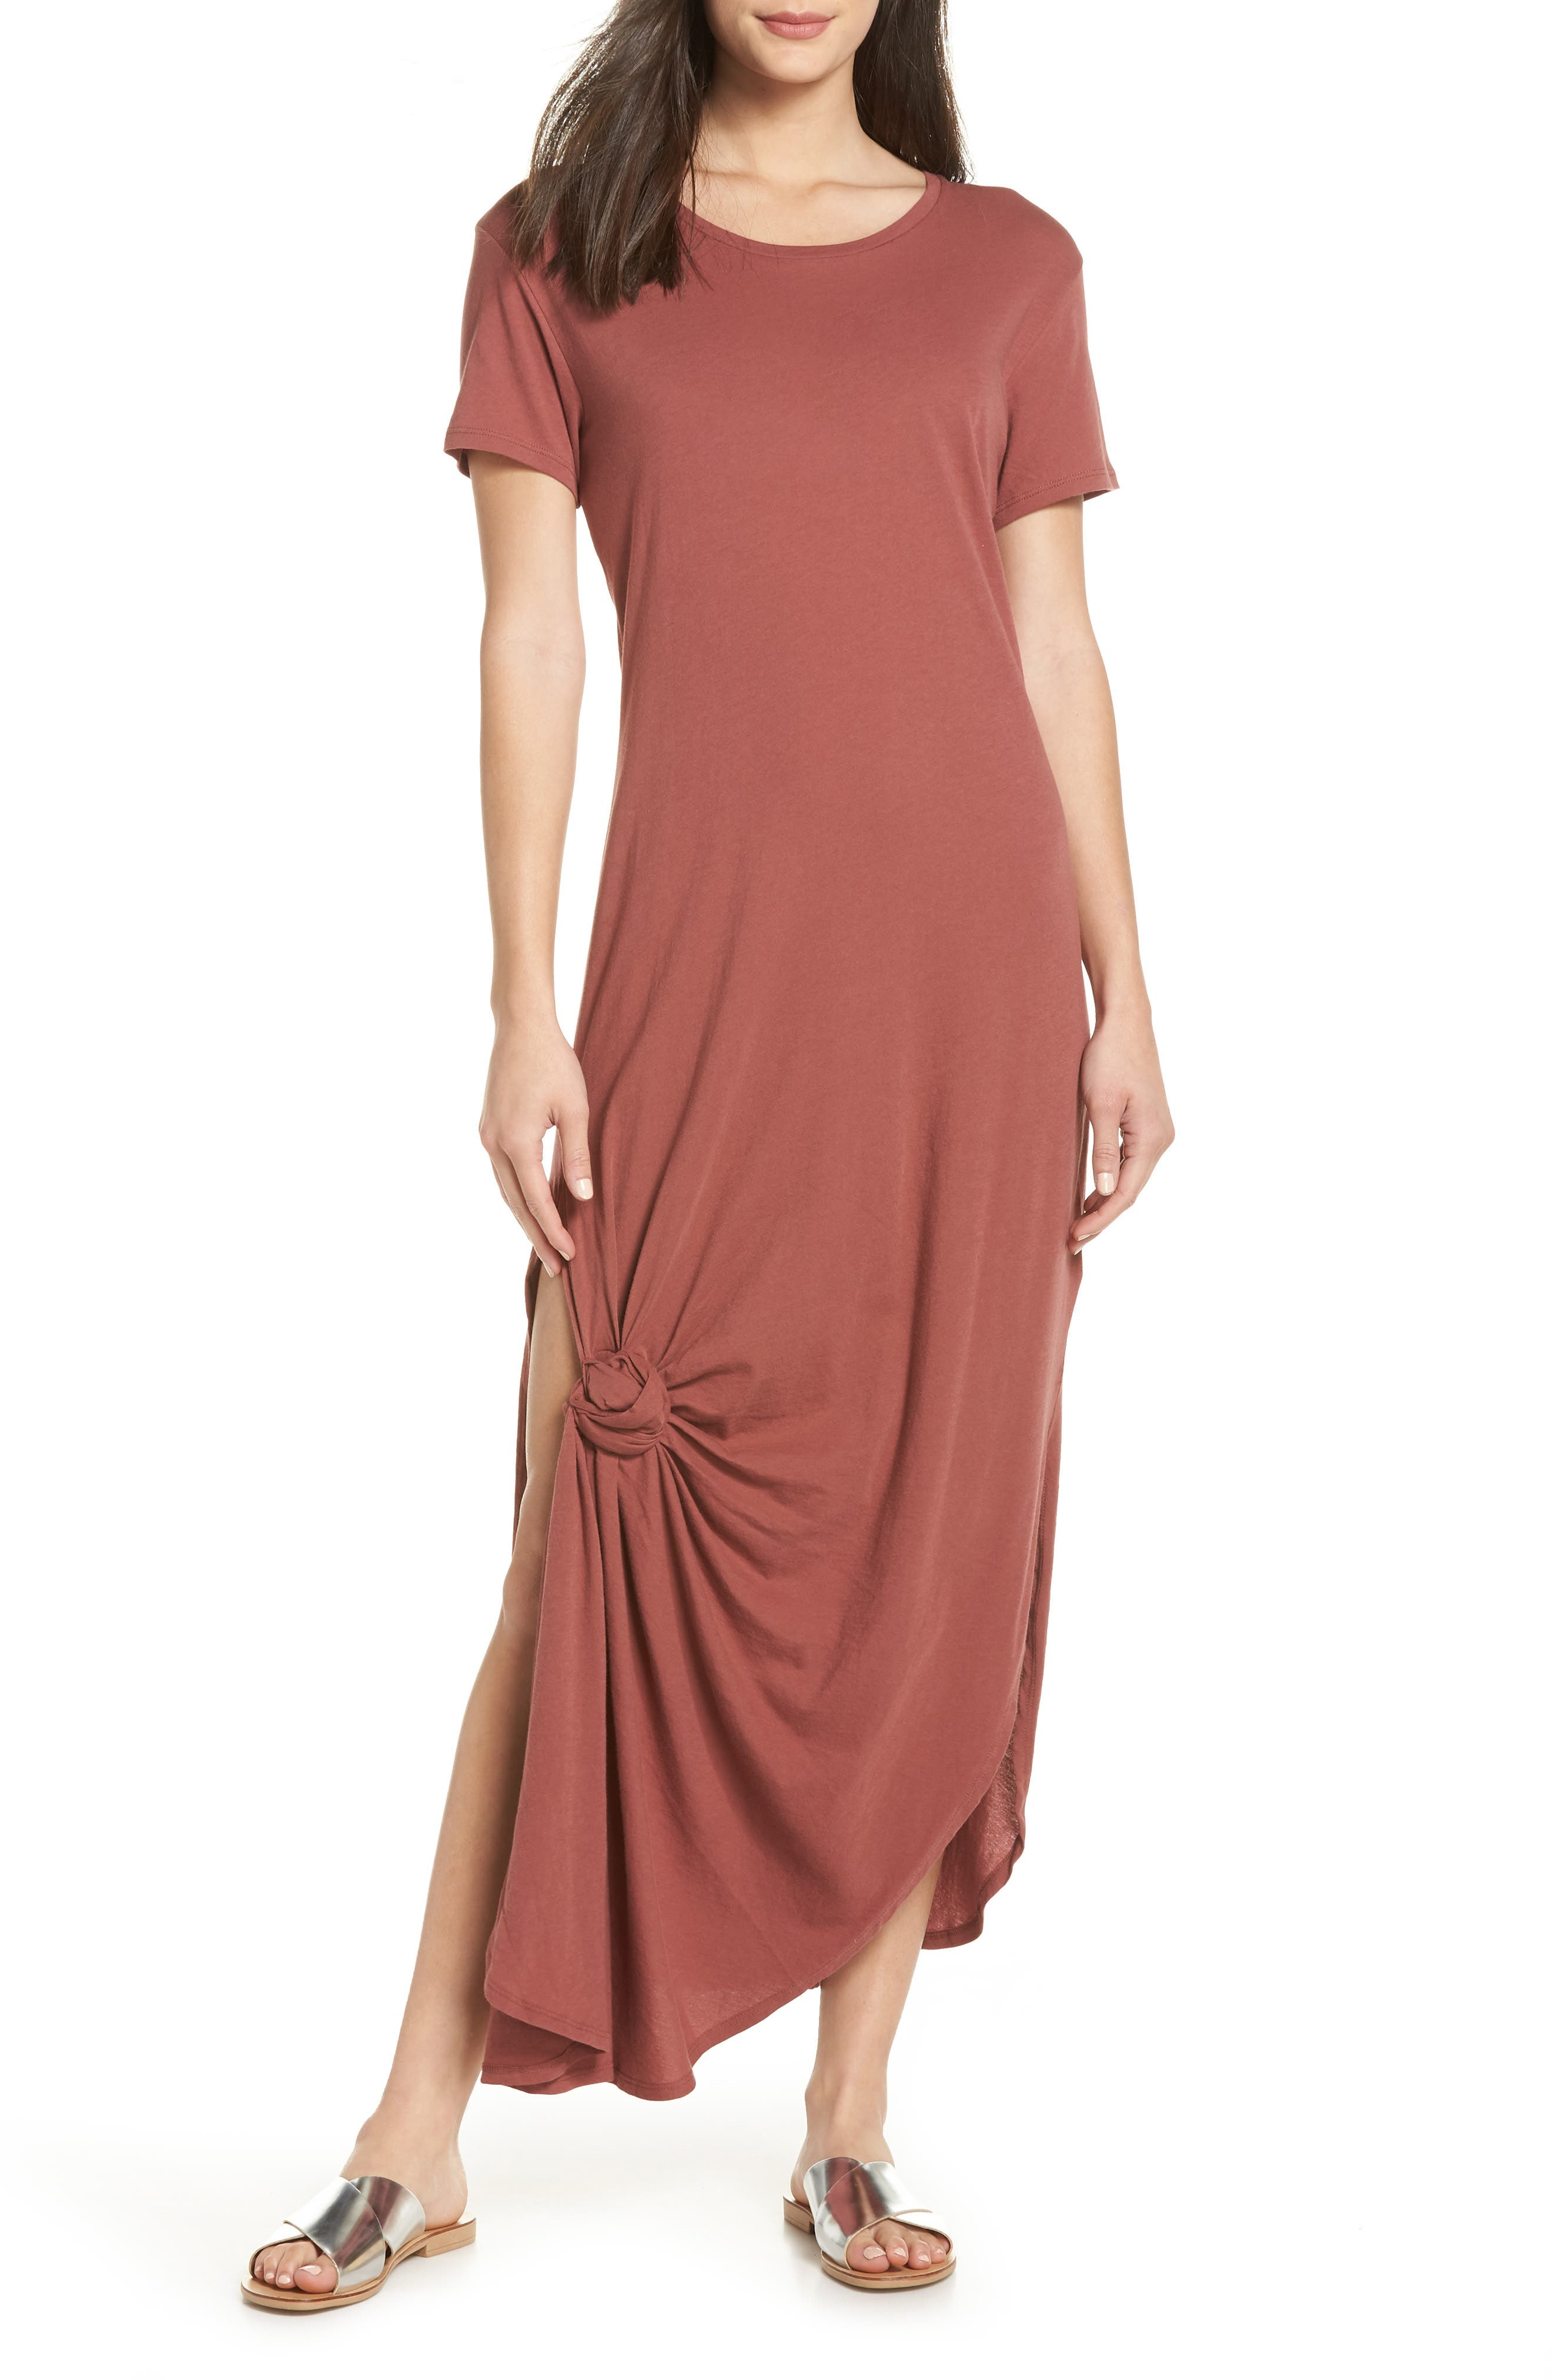 TAVIK, Jones Cover-Up Dress, Main thumbnail 1, color, 930